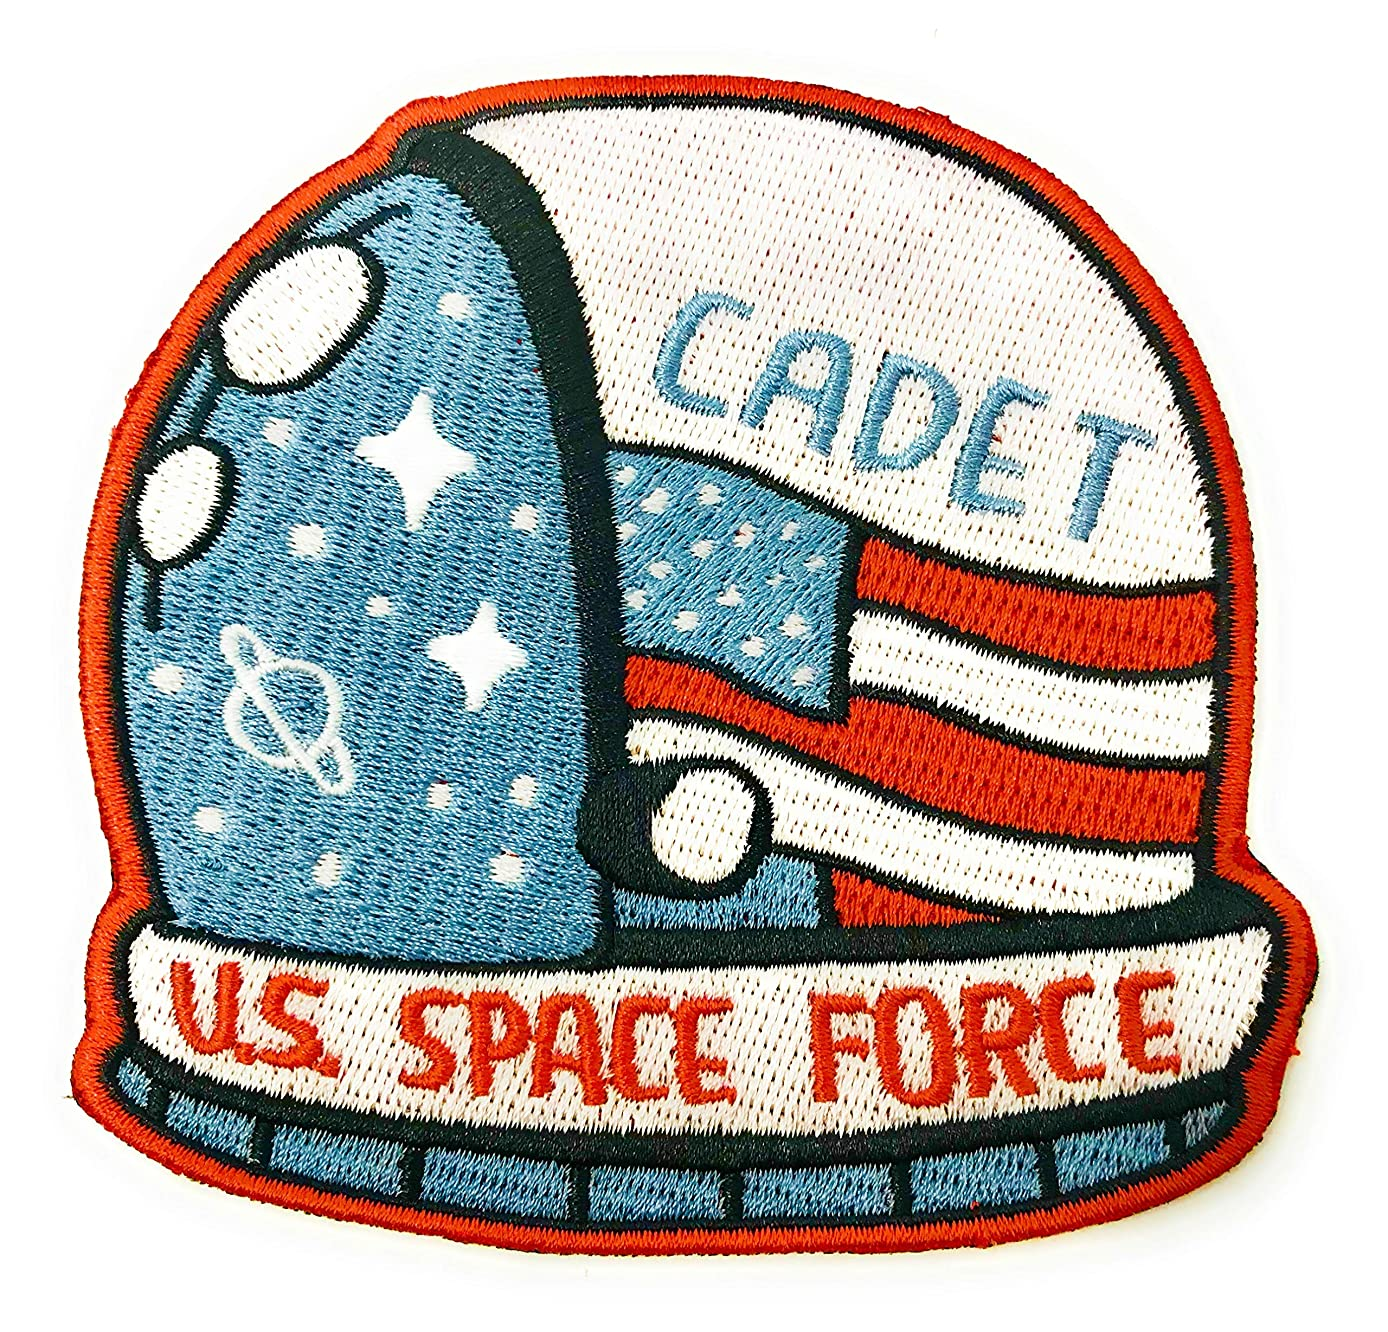 O'Houlihans - Space Force Cadet Iron on Patch - Space Force Patch